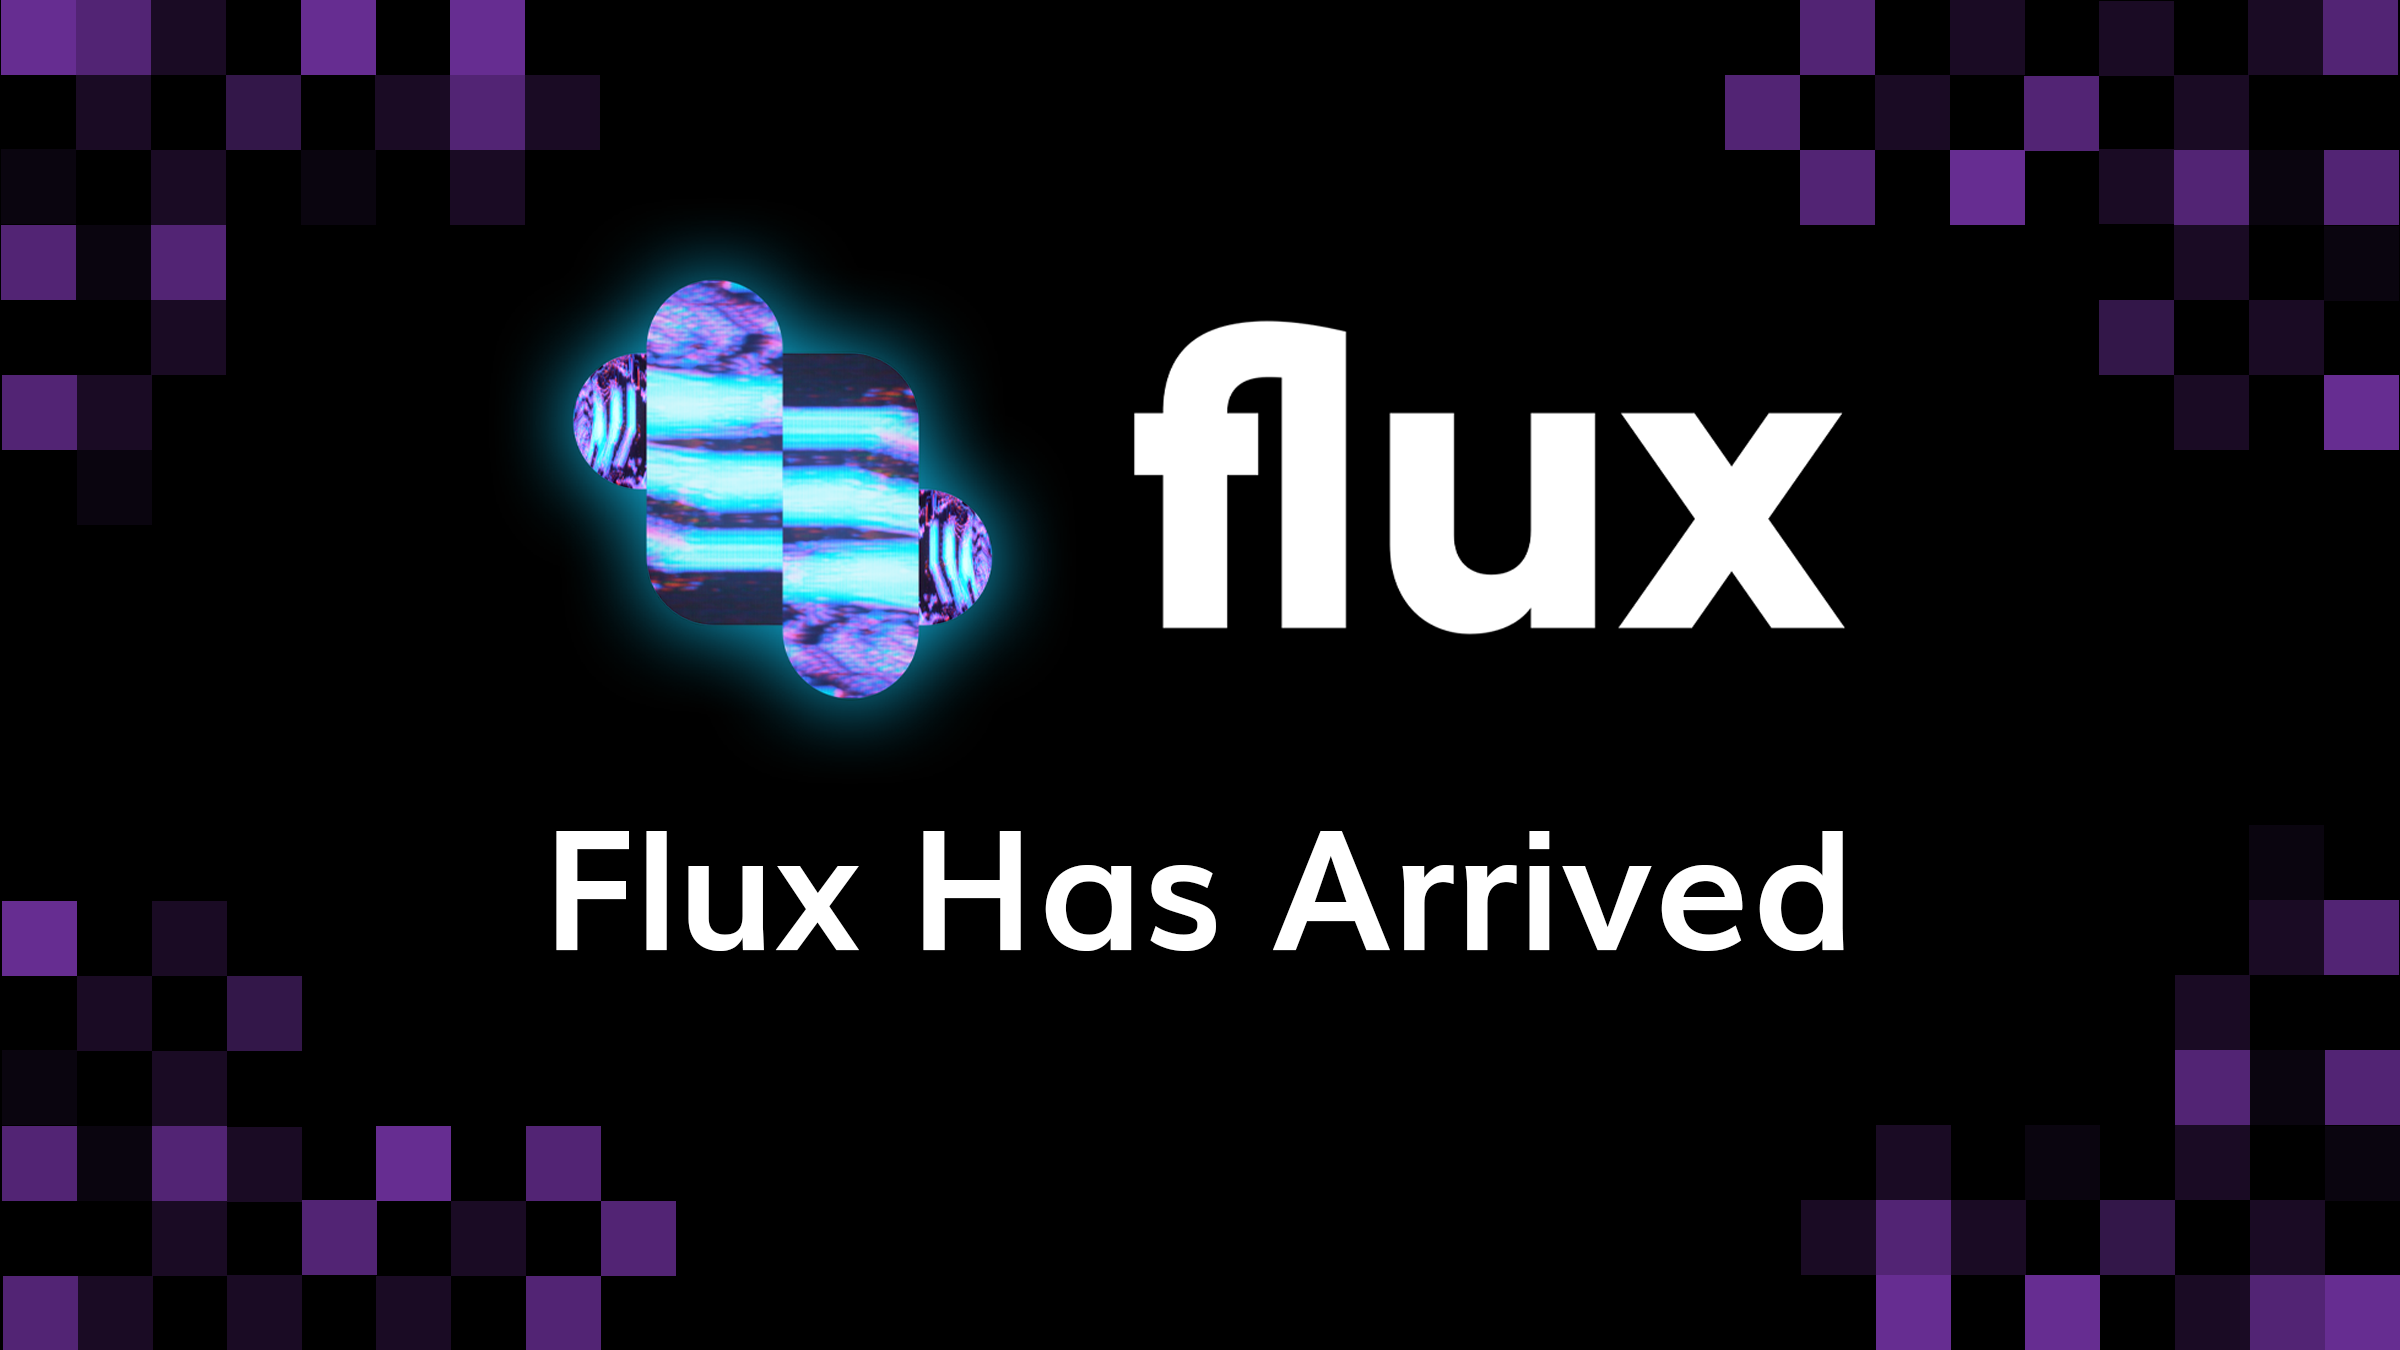 Flux Has Arrived: Why The Time For Decentralized Decision Markets Starts Now